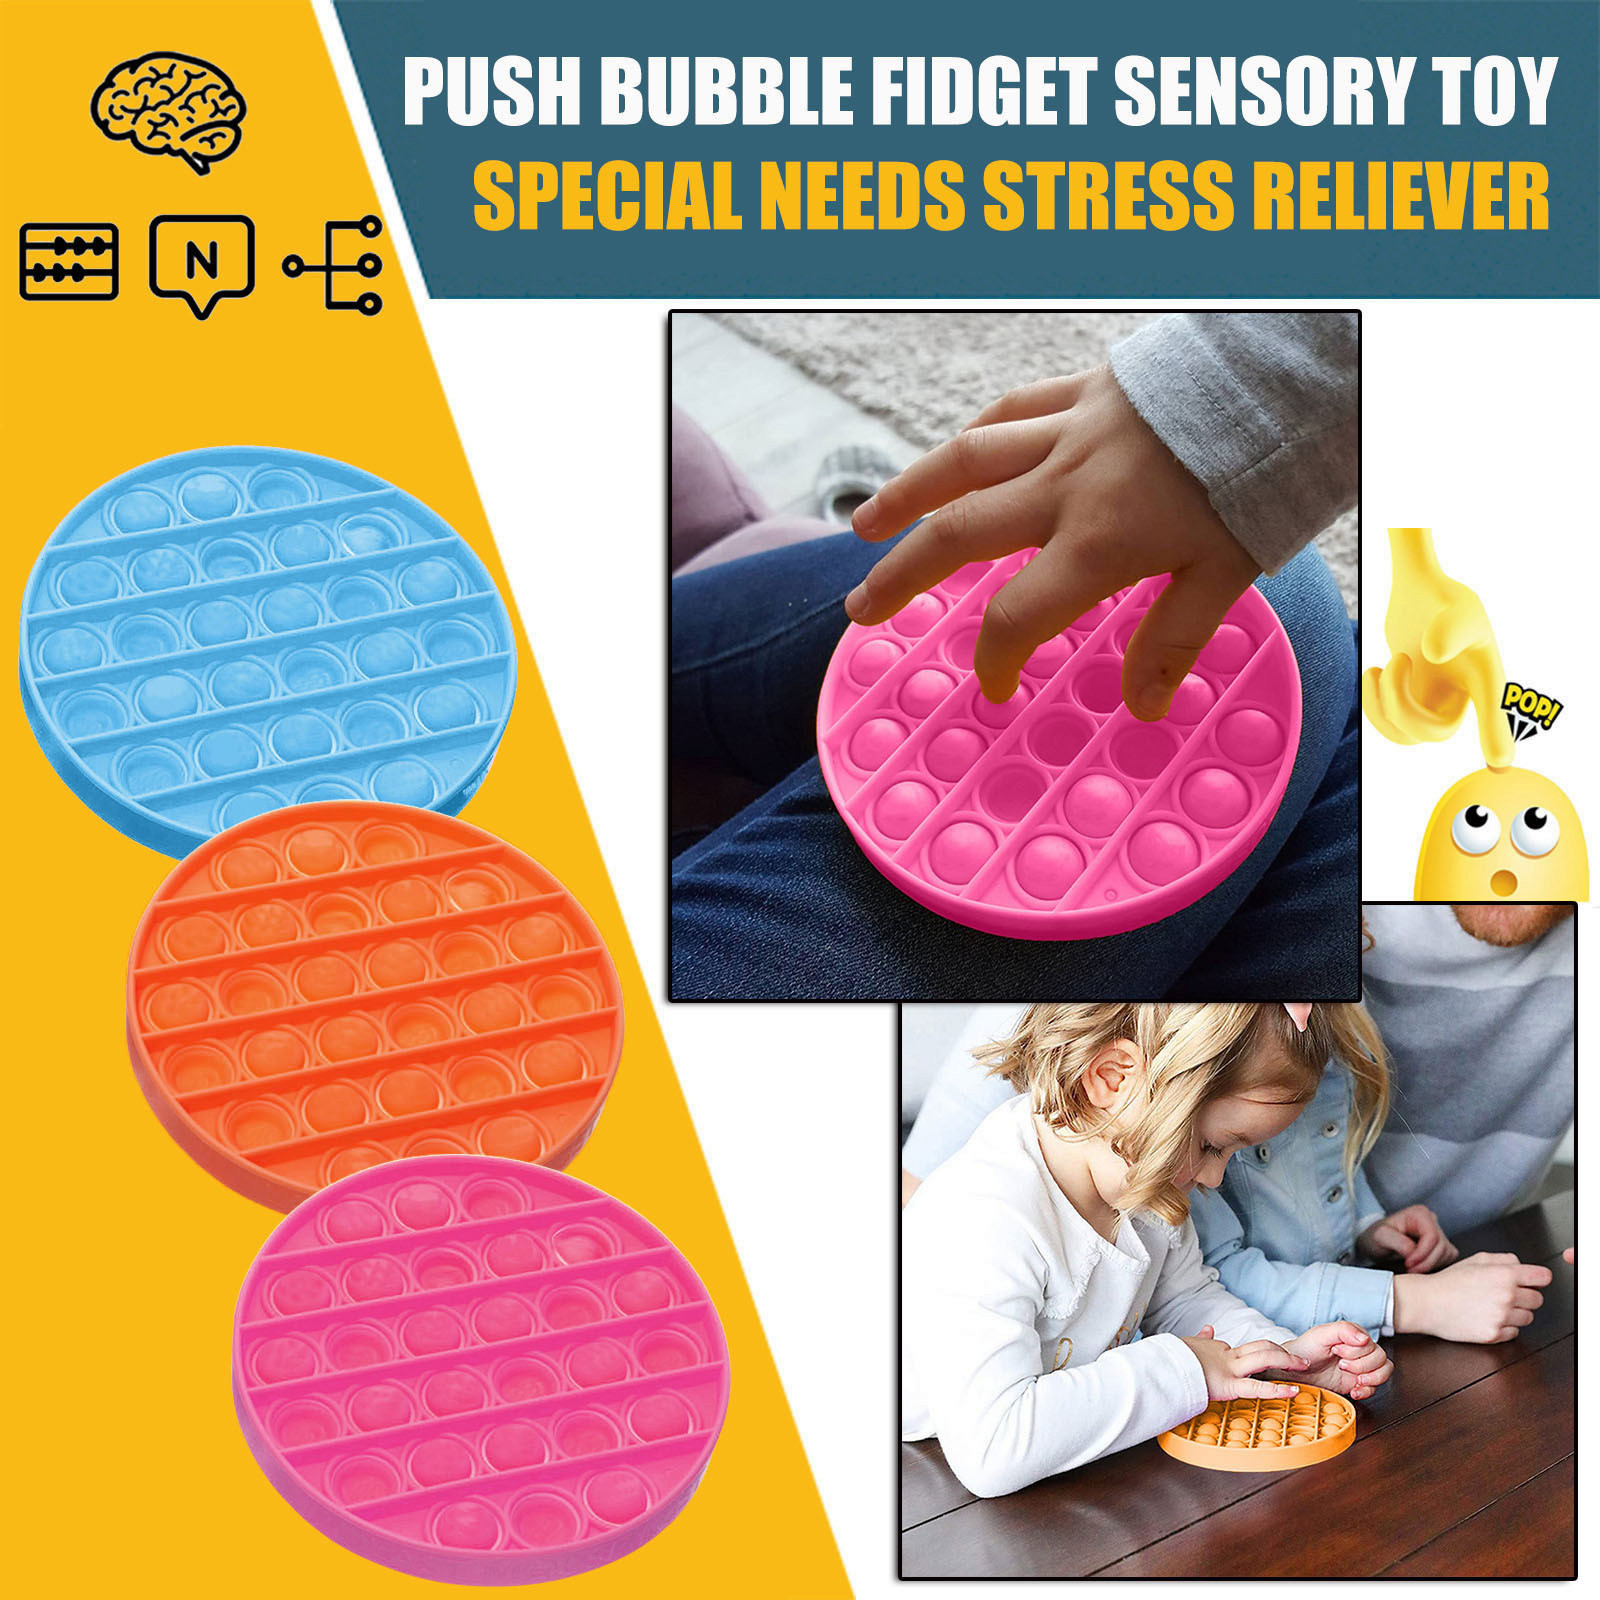 Figet Toys Squeeze-Toy Autism Needs-Stress Push Bubble POPS Squishy Reliever Special img2